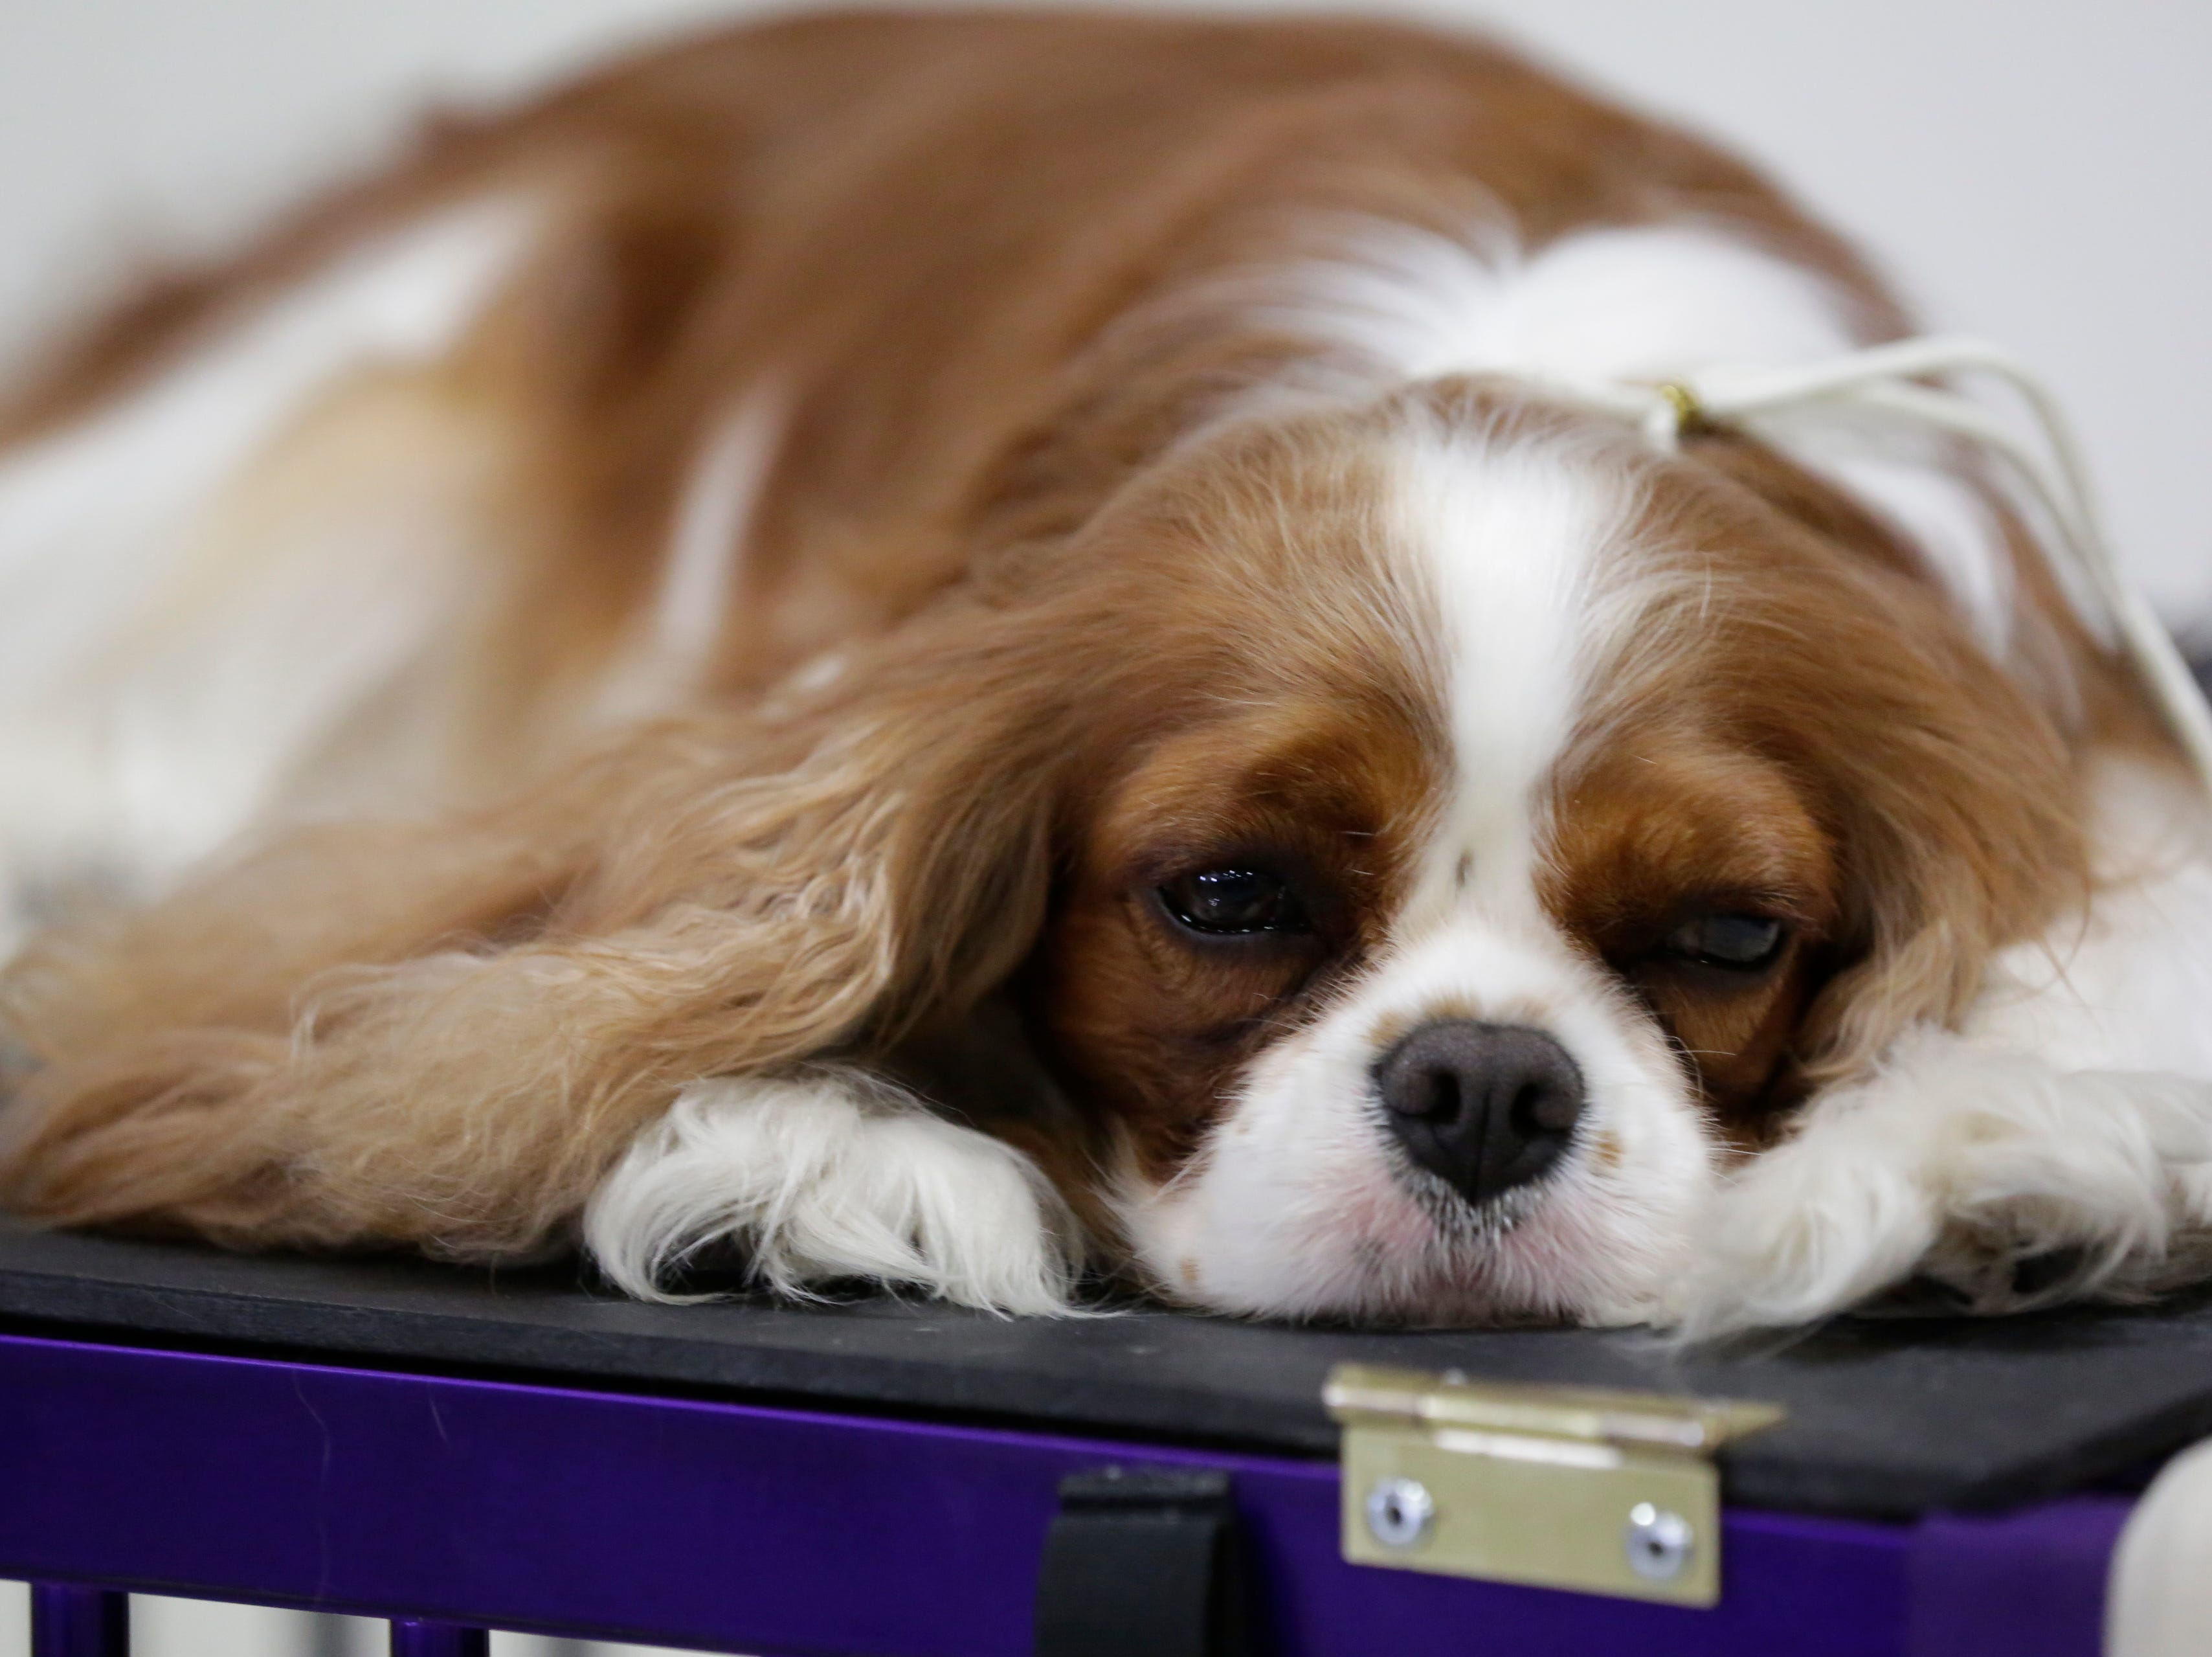 Penny, a Cavalier King Charles spaniel, rests during the Marshfield Area Kennel Club's All-Breed Dog Show, Obedience Trials and Rally Trials at the Central Wisconsin Fairgrounds in Marshfield Saturday, August 18, 2018.